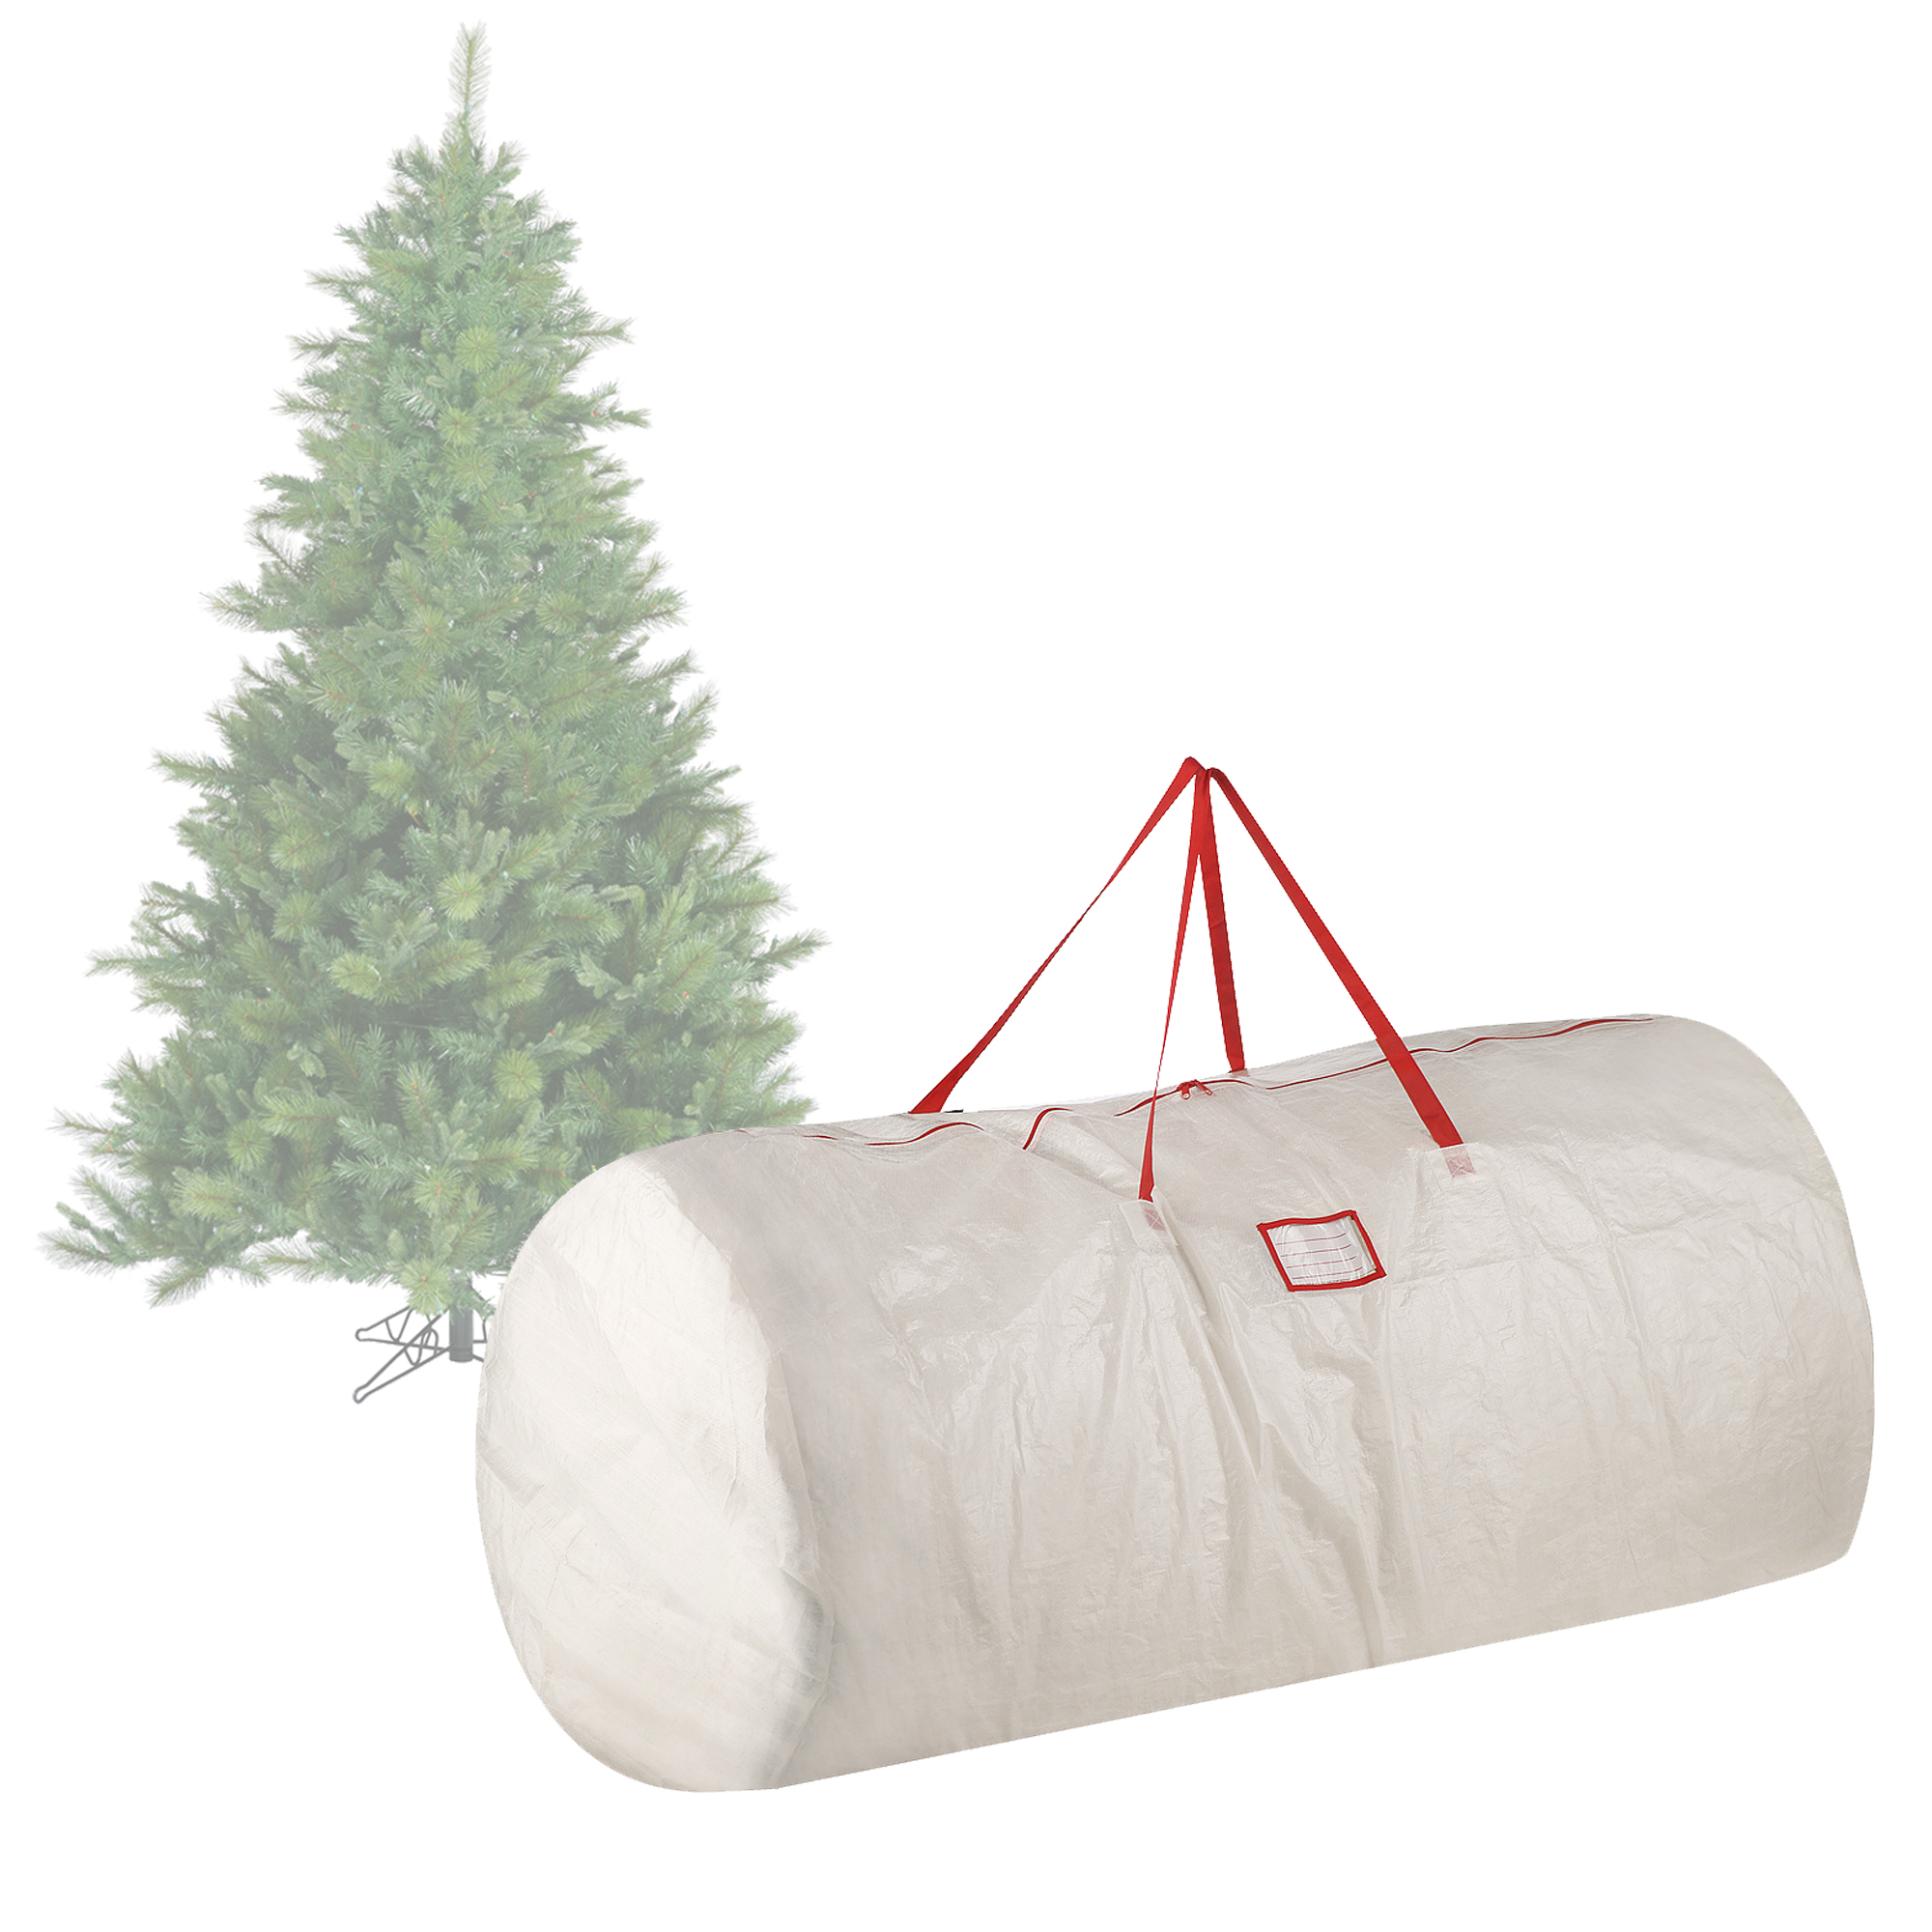 Elf Stor Premium White Holiday Christmas Tree Storage Bag Large For 9 Foot Tree Walmart Com